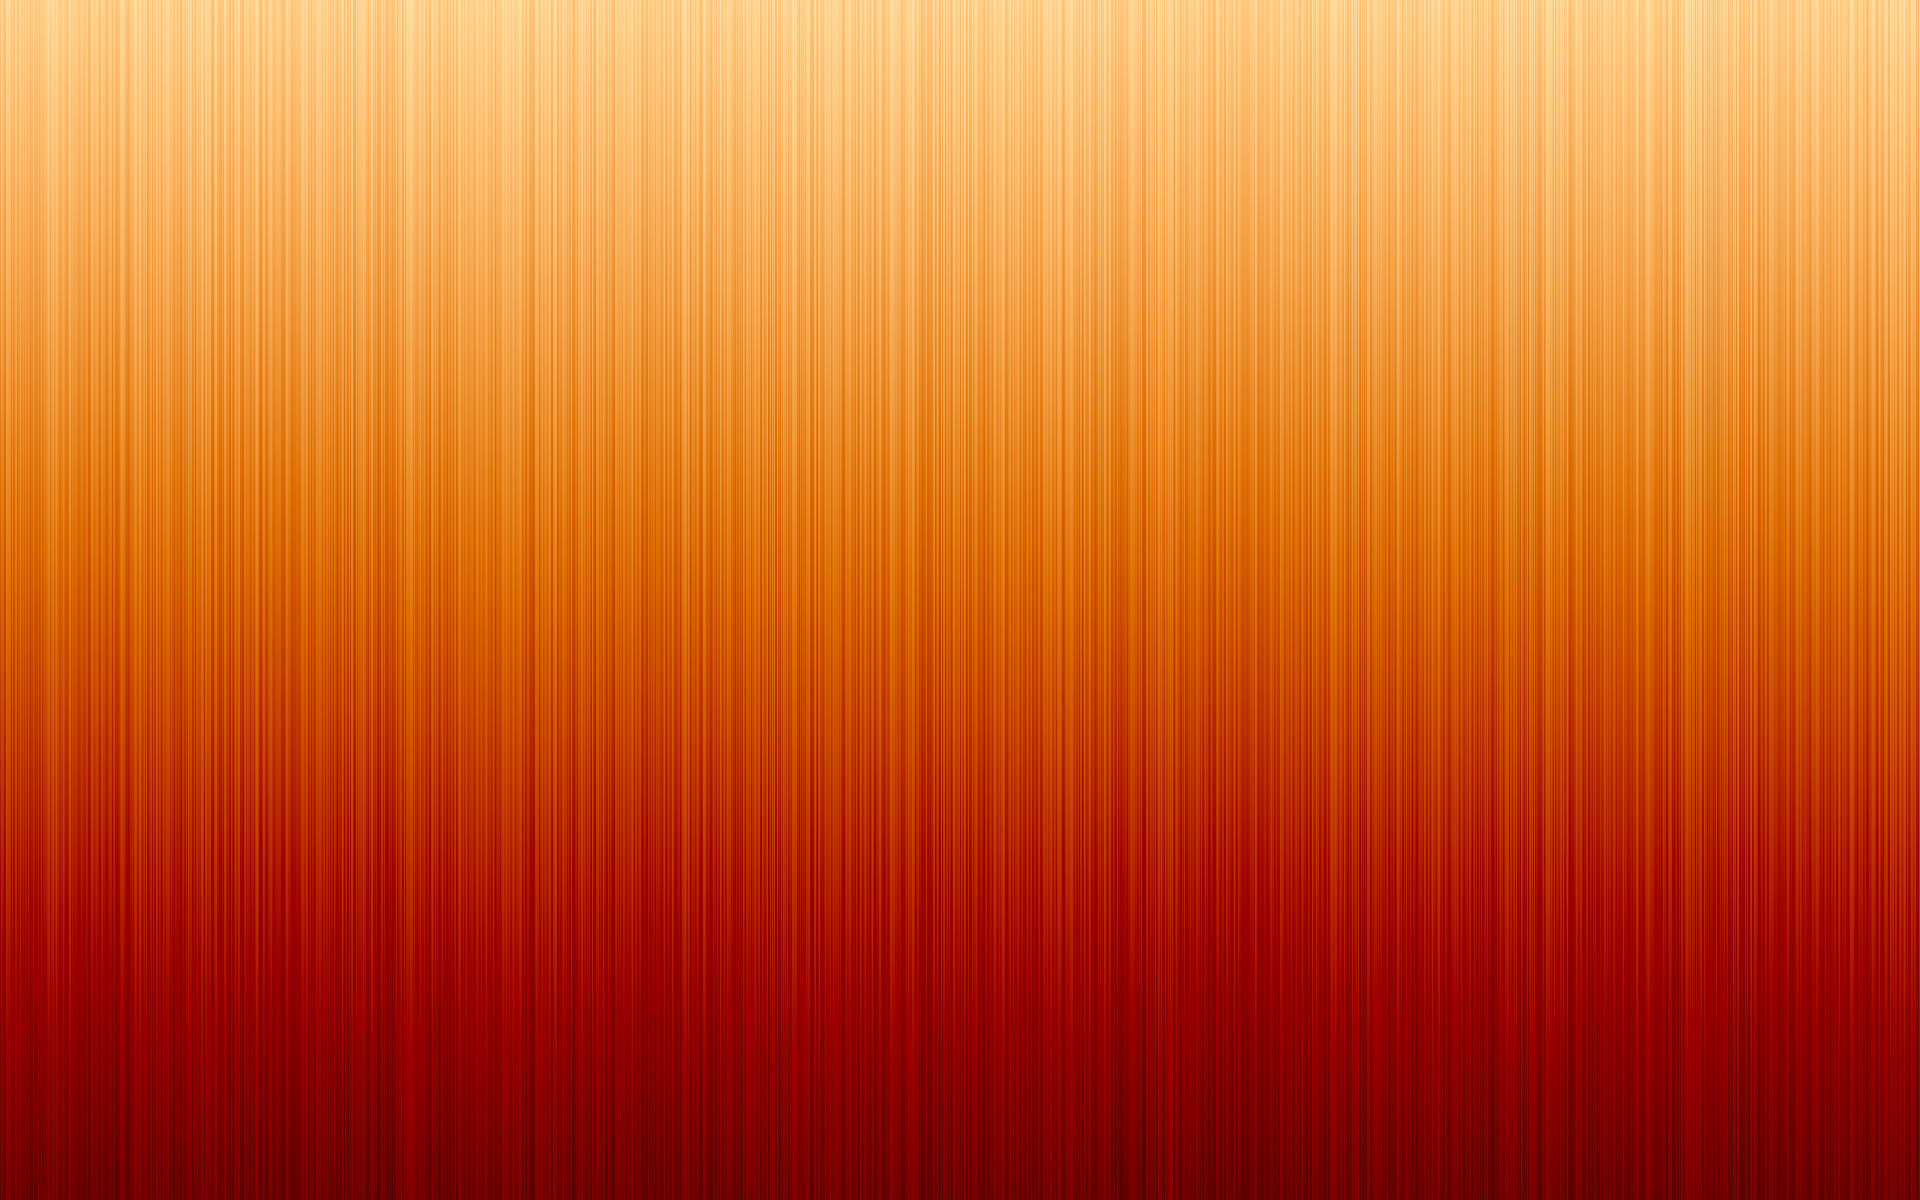 Orange Wallpaper HD